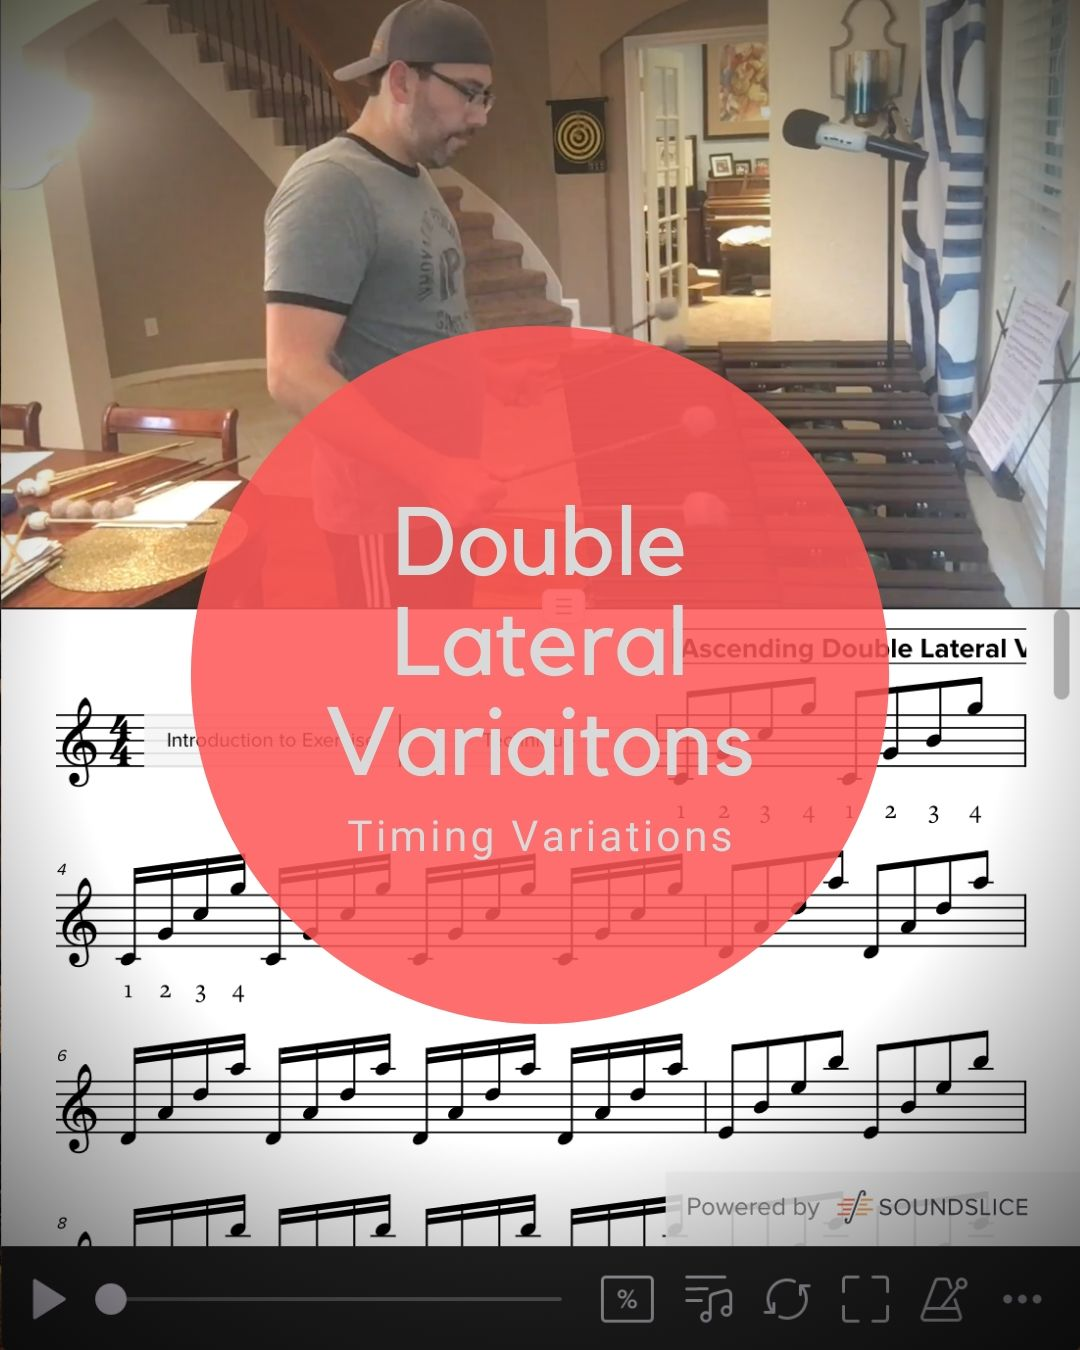 Double Lateral Variations